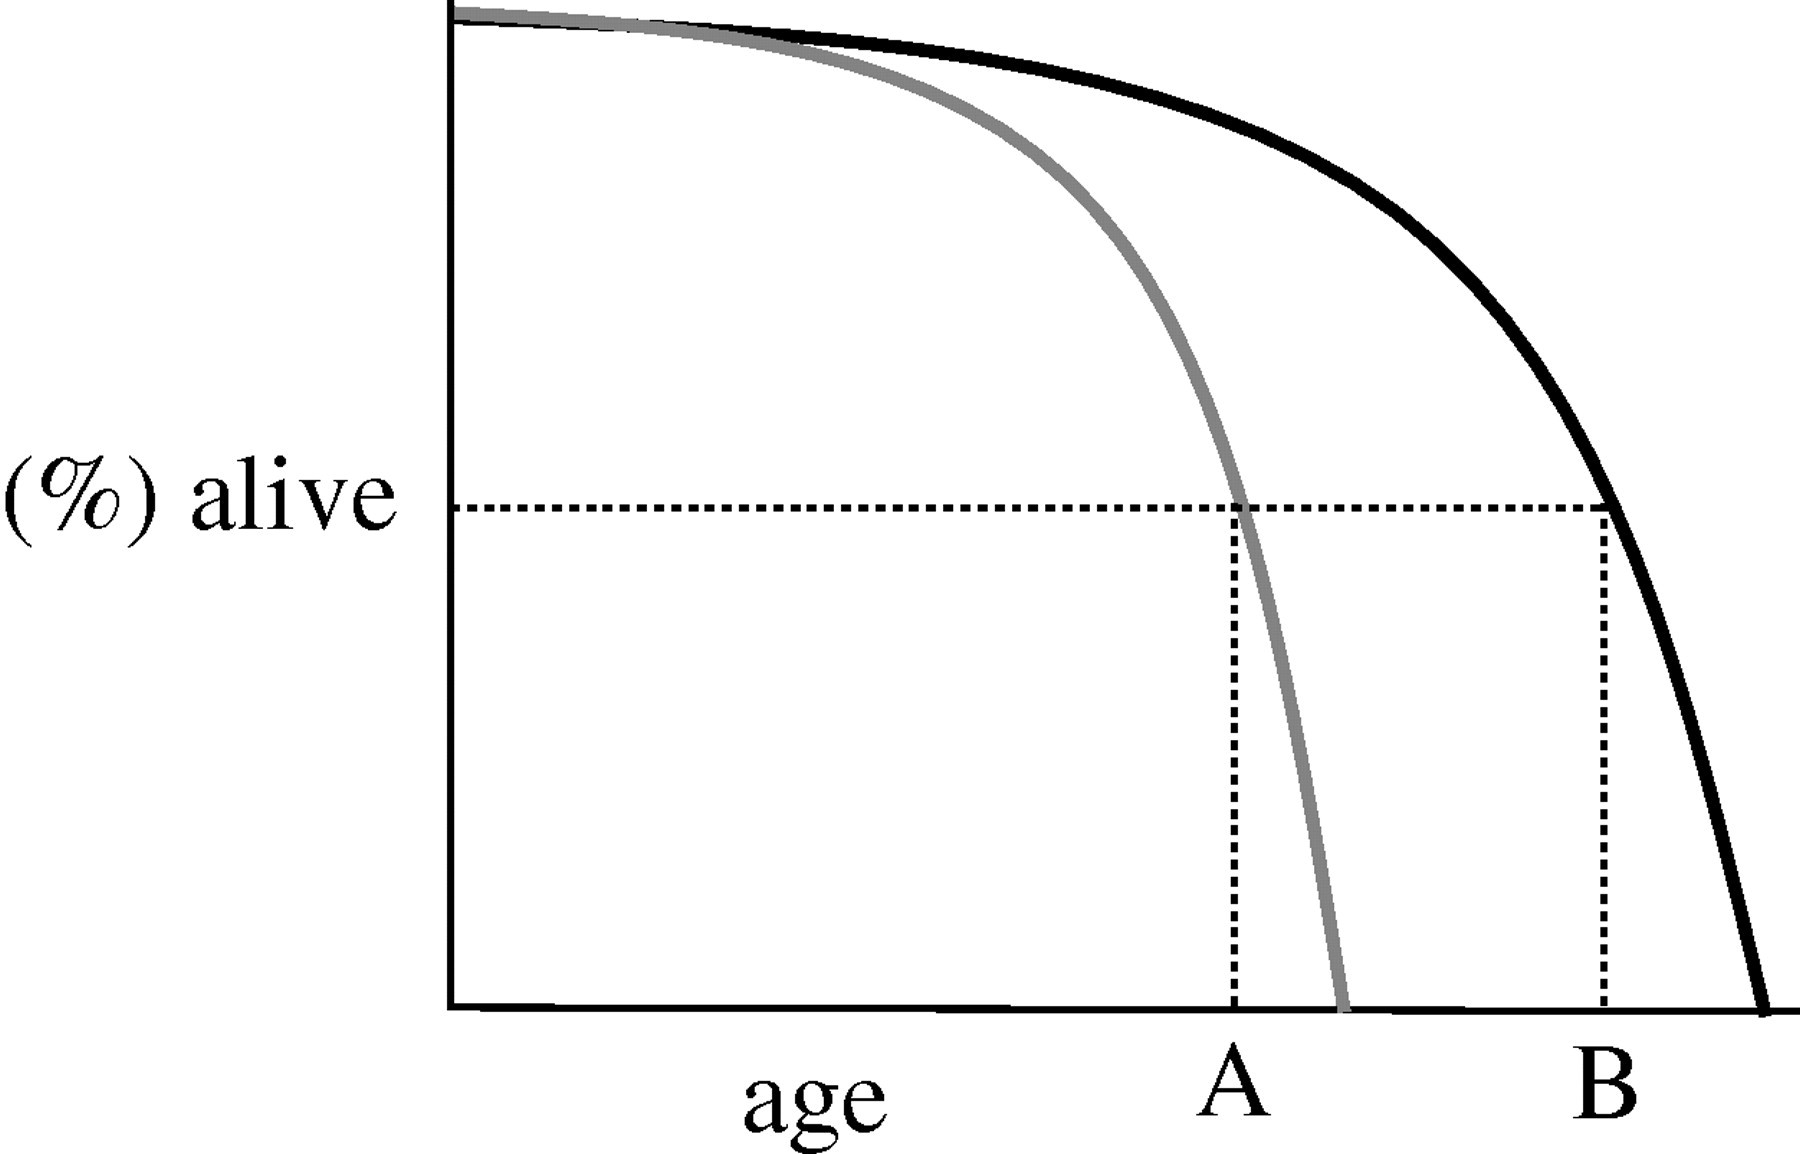 Tragedy and delight: the ethics of decelerated ageing